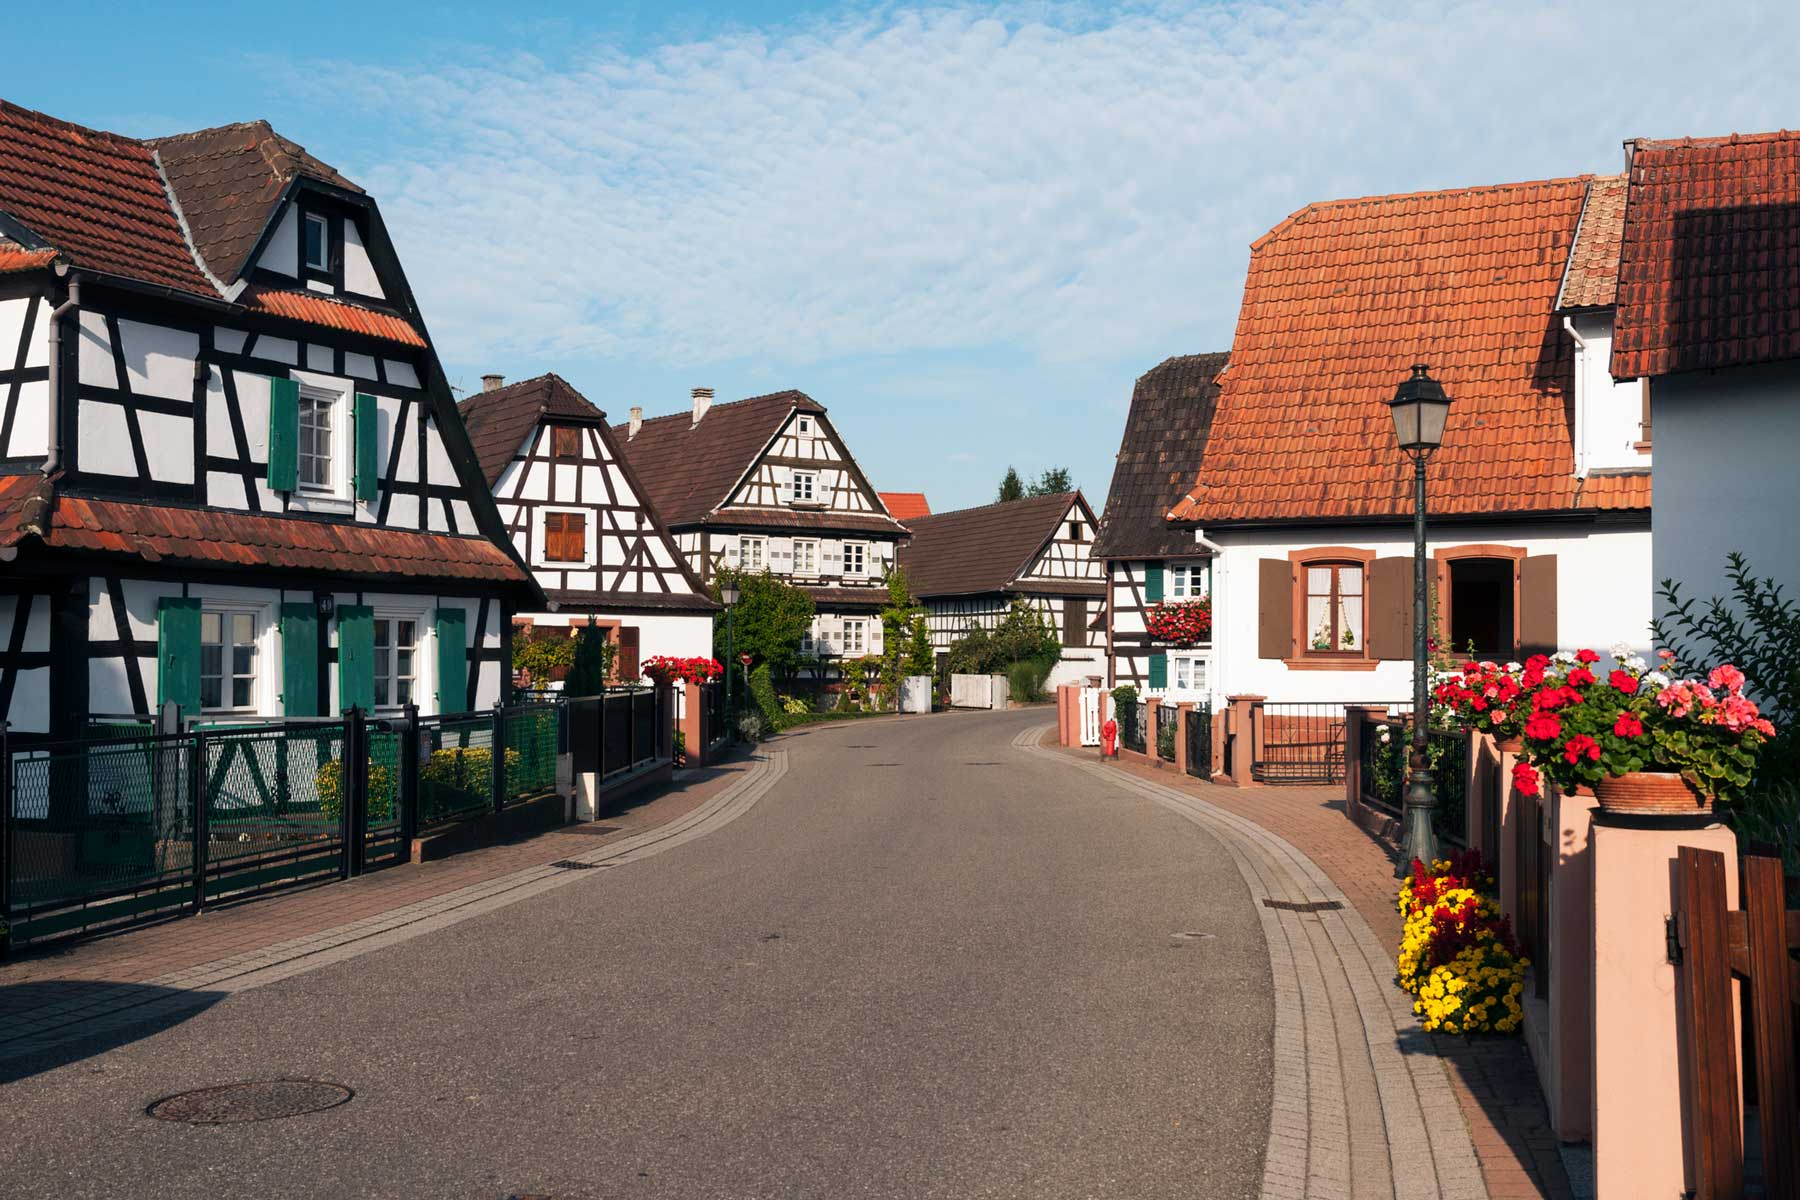 France, Alsace, Hunspach, half-timbered houses on a curved road